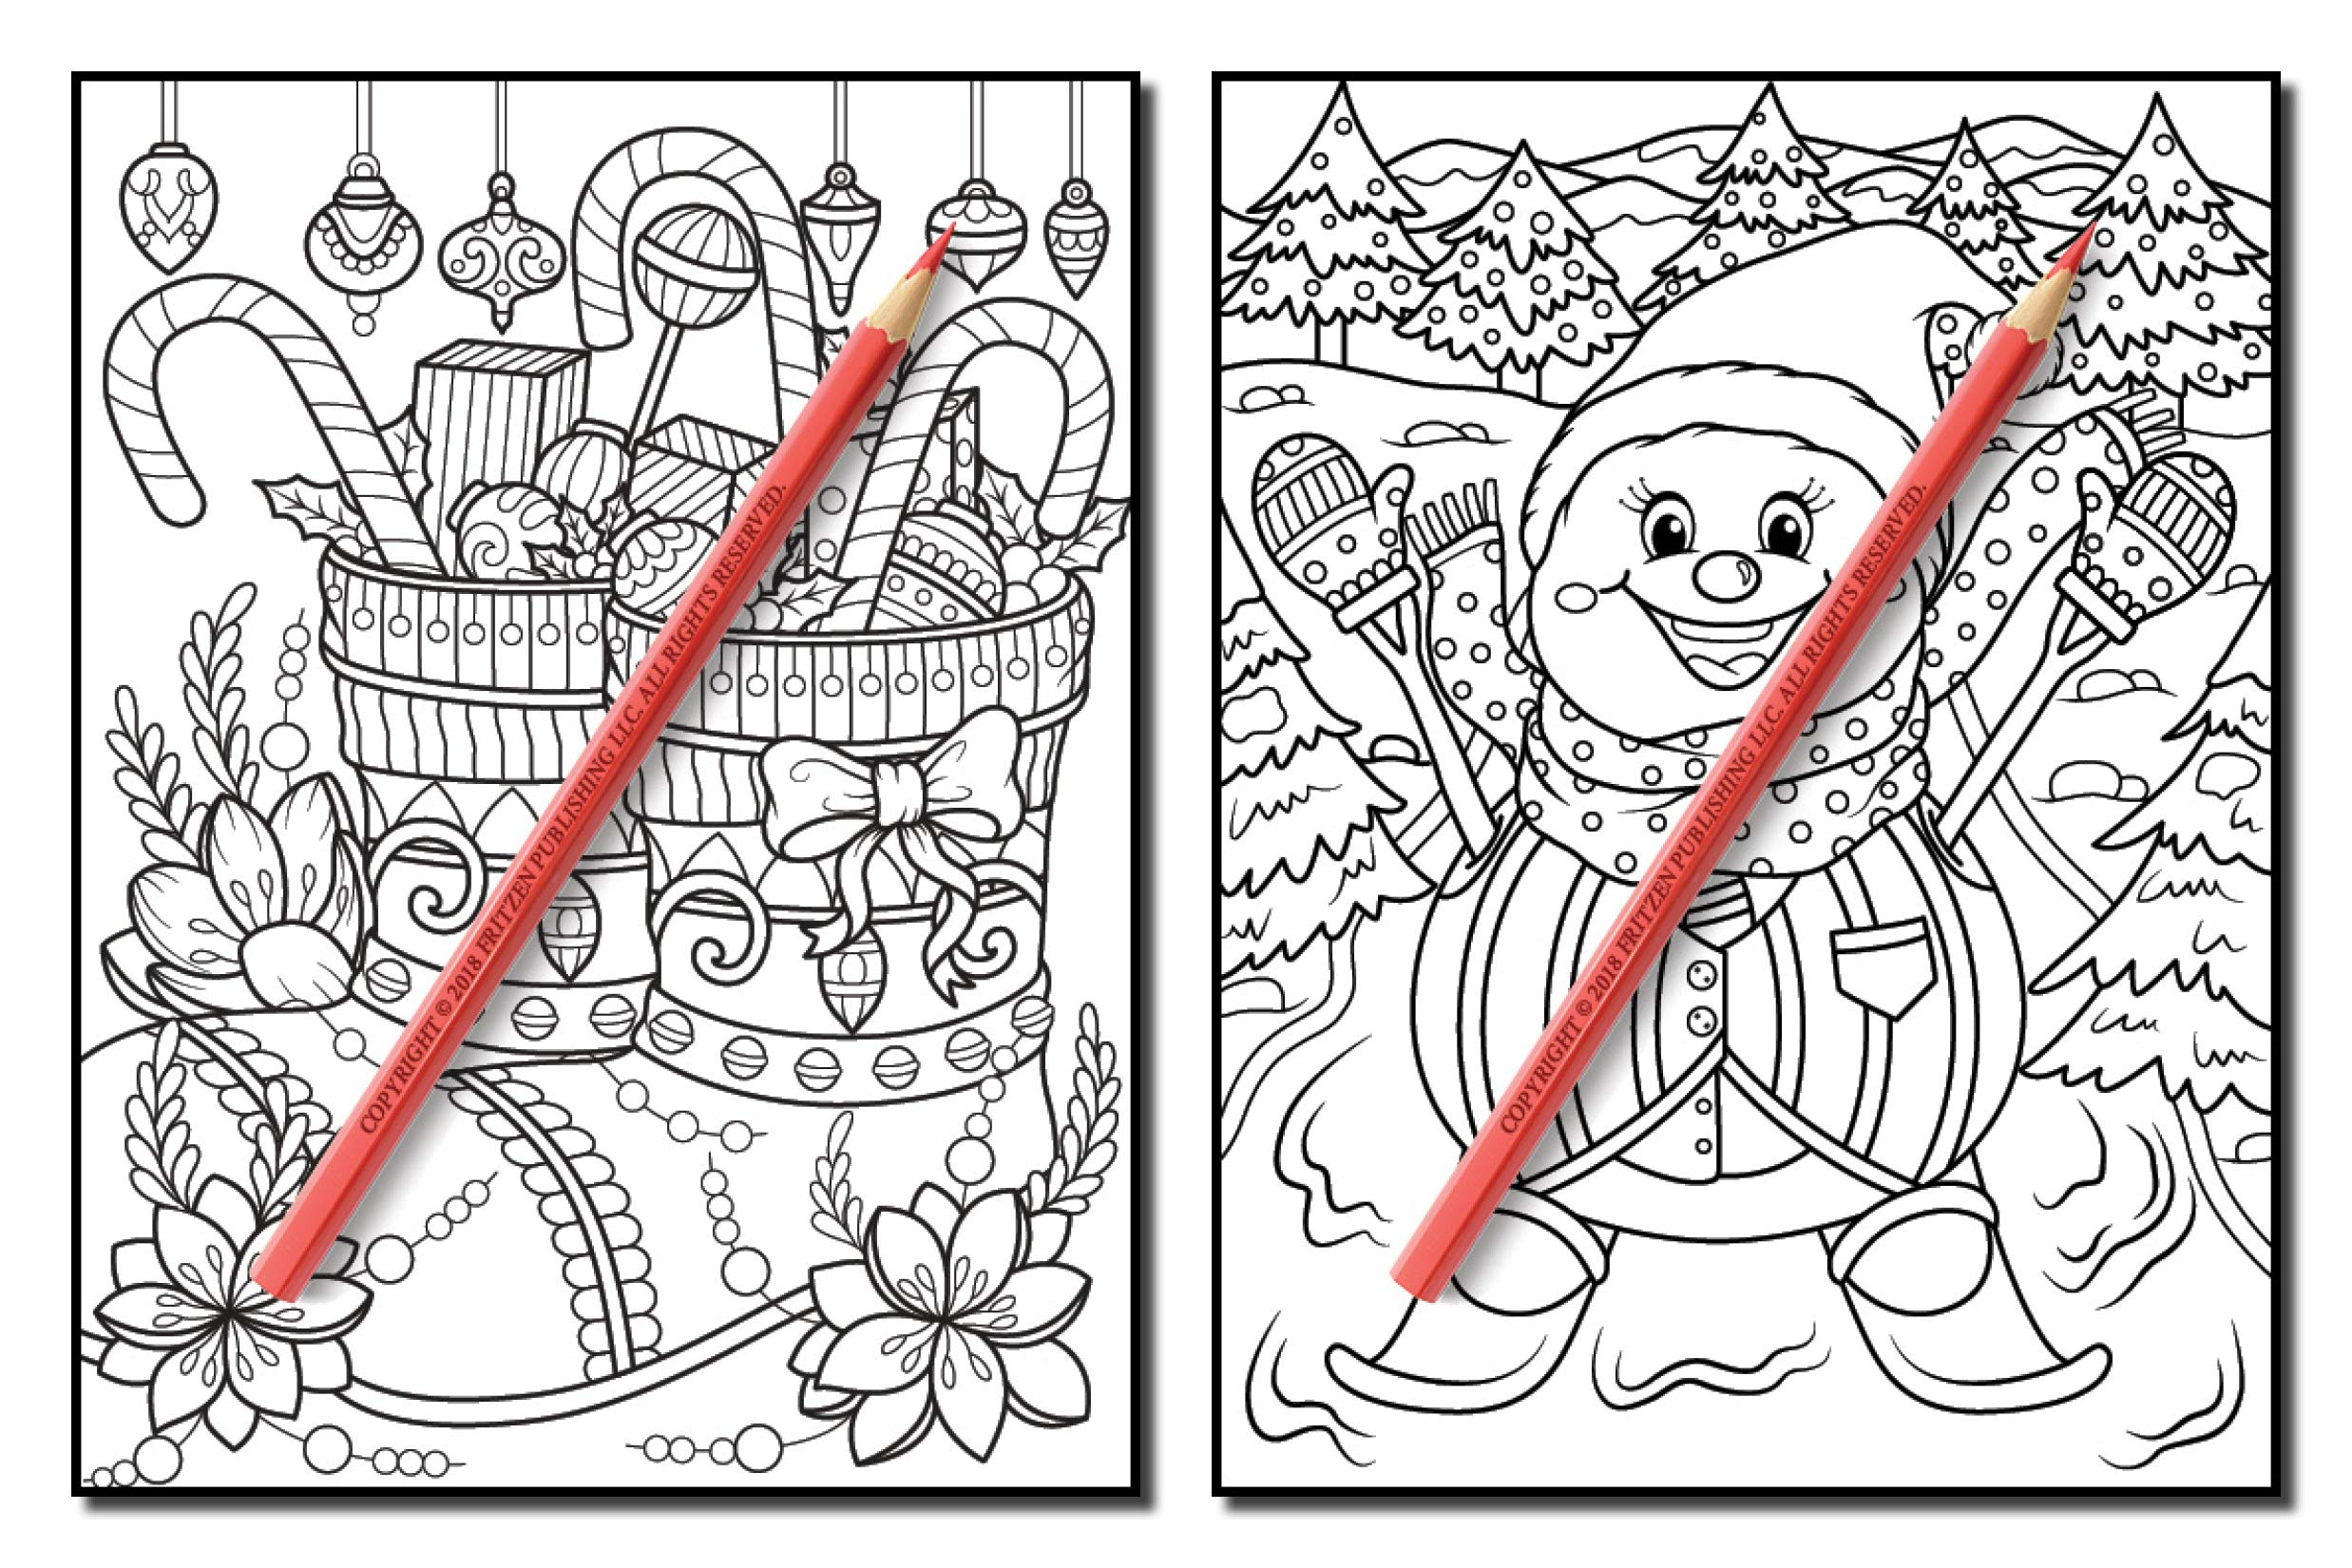 christmas coloring book an adult coloring book with fun easy and relaxing coloring pages volume 2 jade summer 9781730929007 amazoncom books